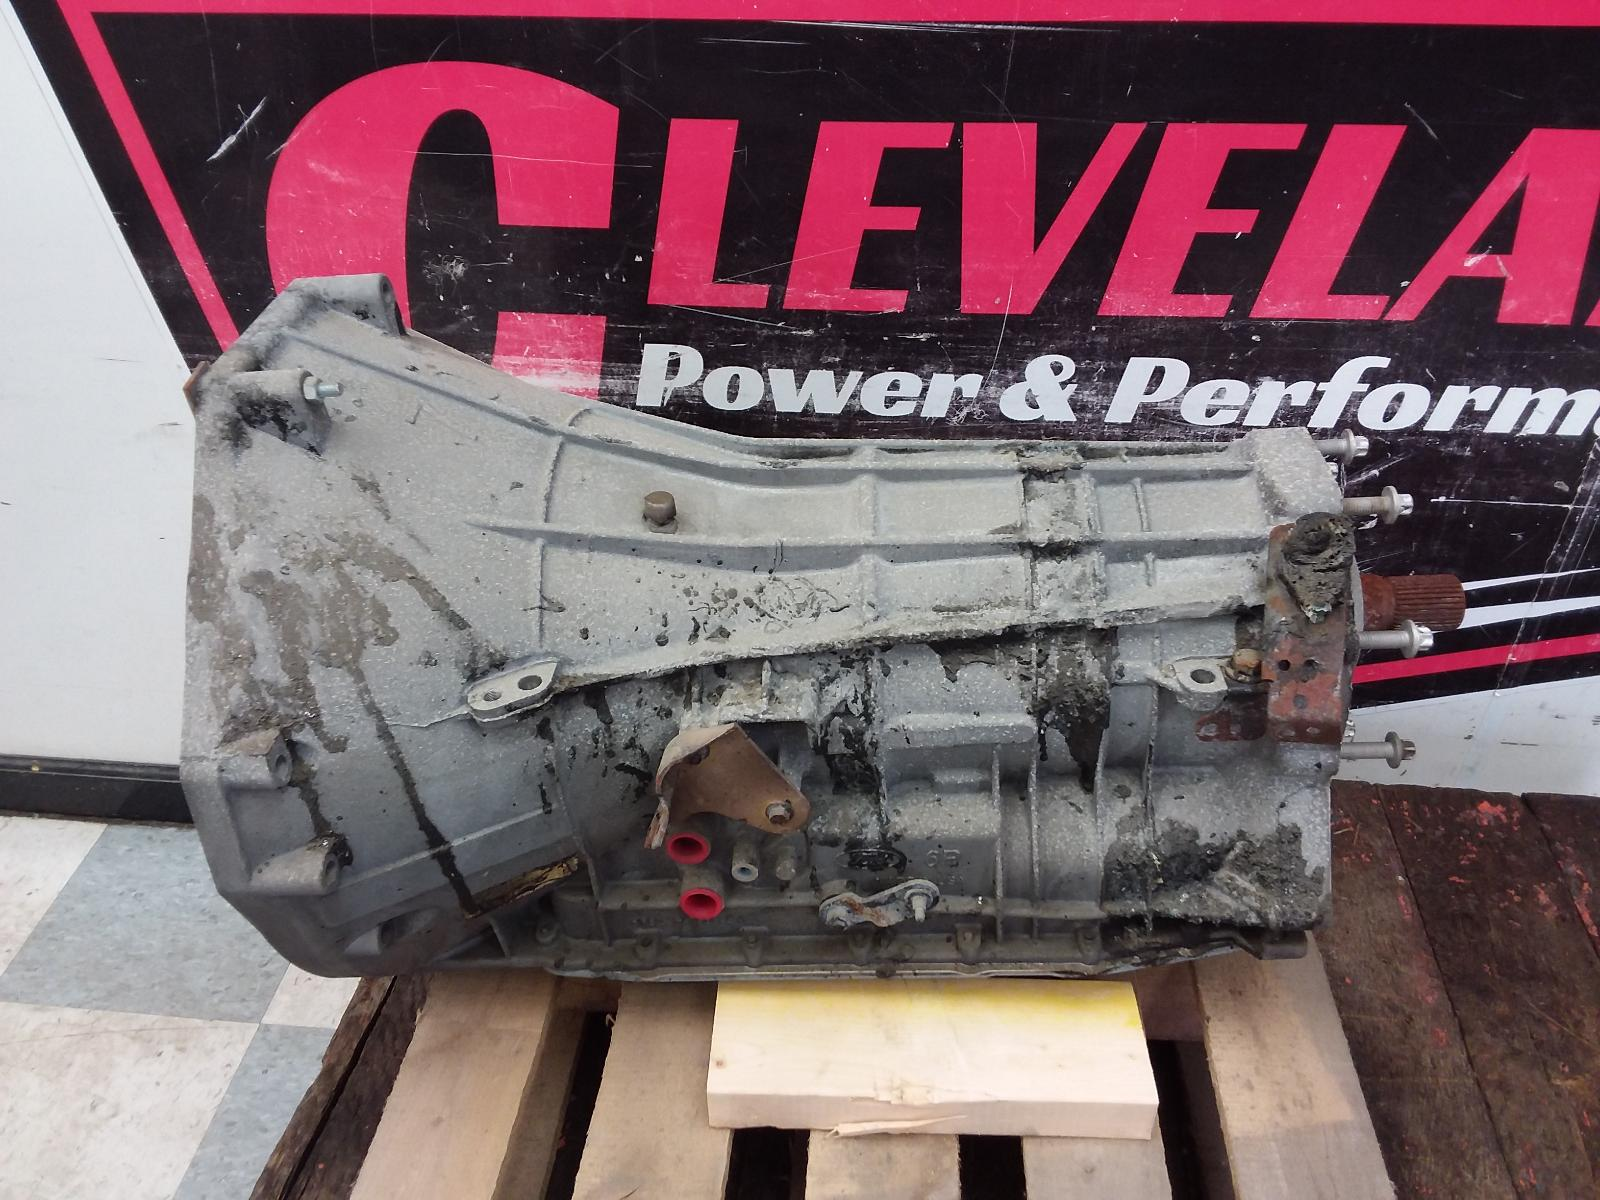 transmission ford f150 6r80 mileage assembly truck burned warranty pickup unknown automatic oem parts only upgrades